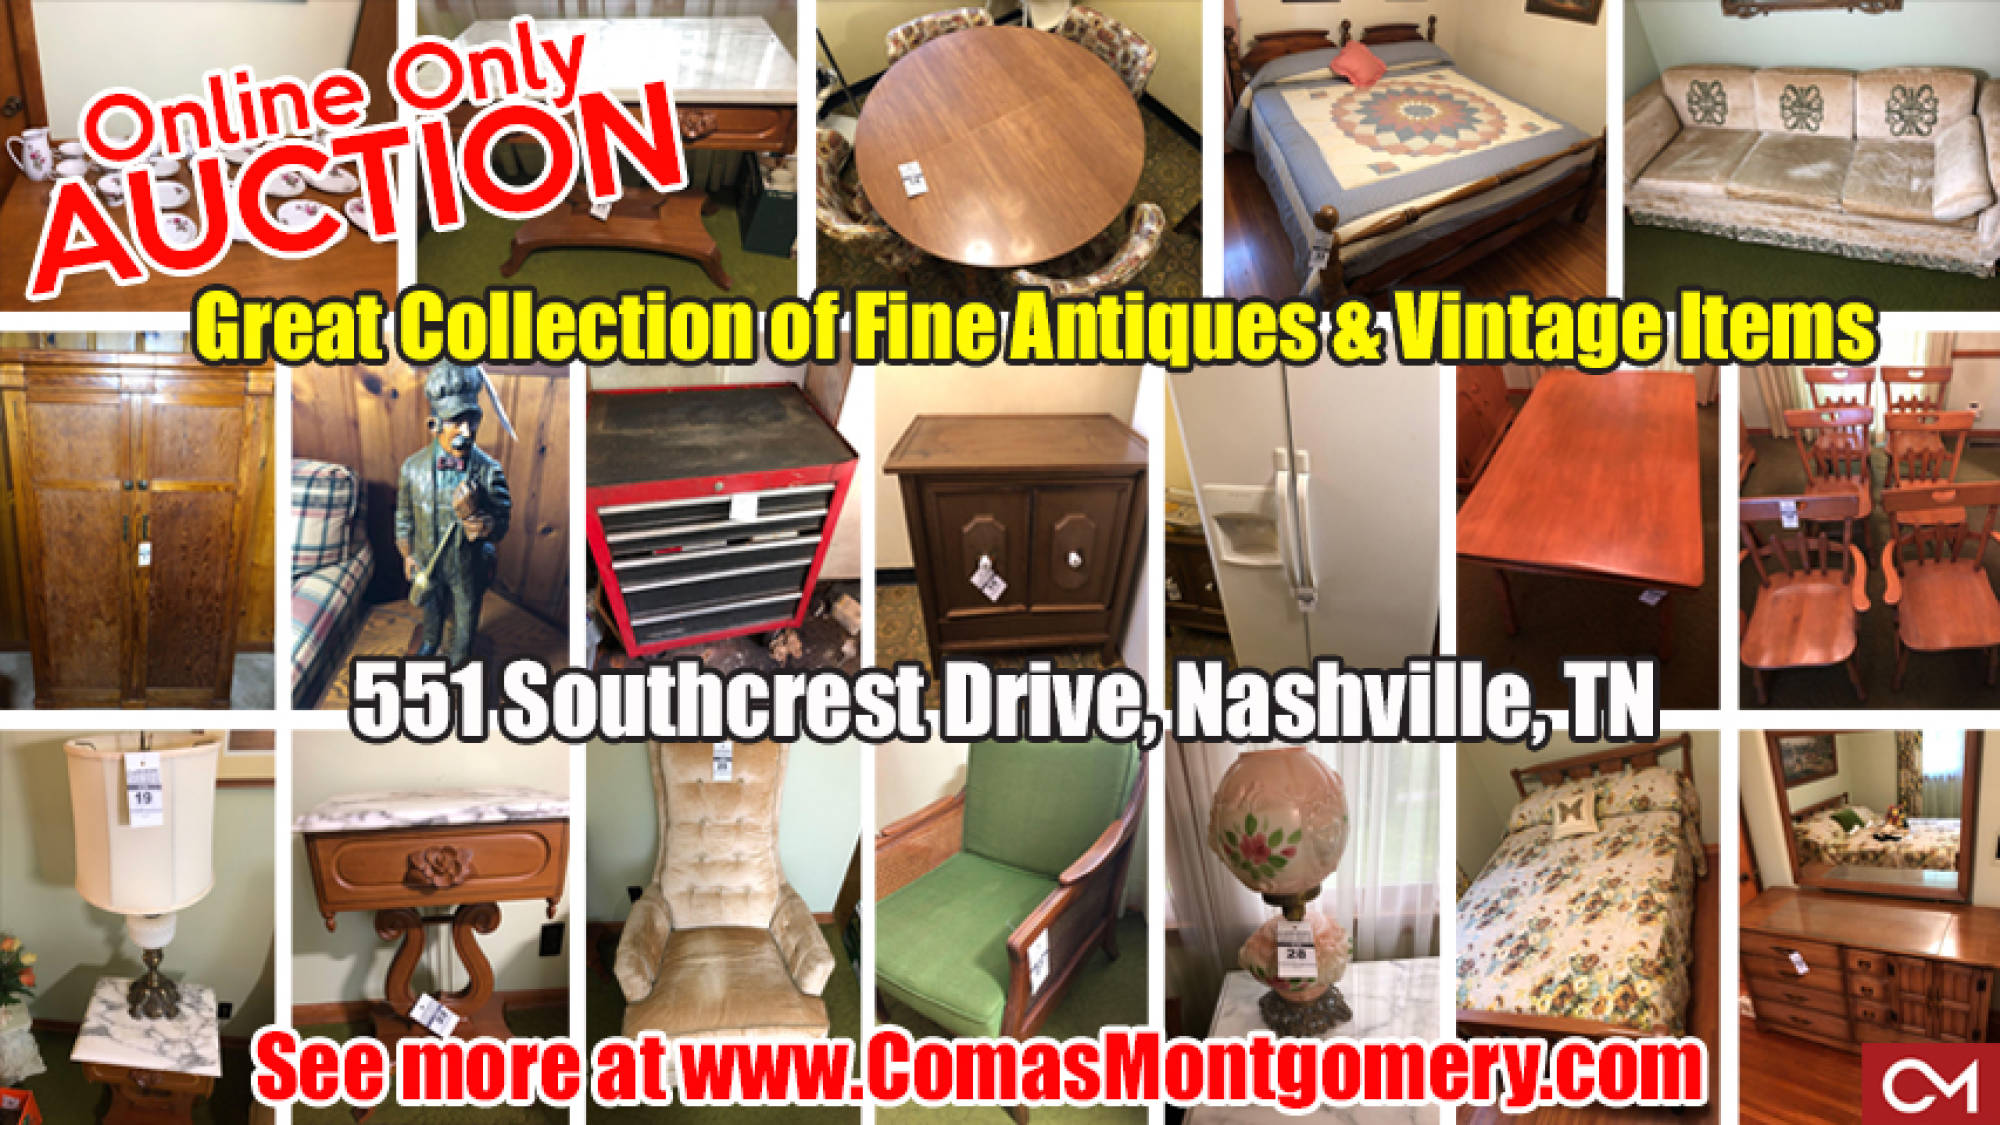 Antiques, Vintage, Items, For Sale, Furniture, Glassware, Appliances, Nashville, Estate, Sale, Tennessee, Comas, Montgomery, Online, Auction